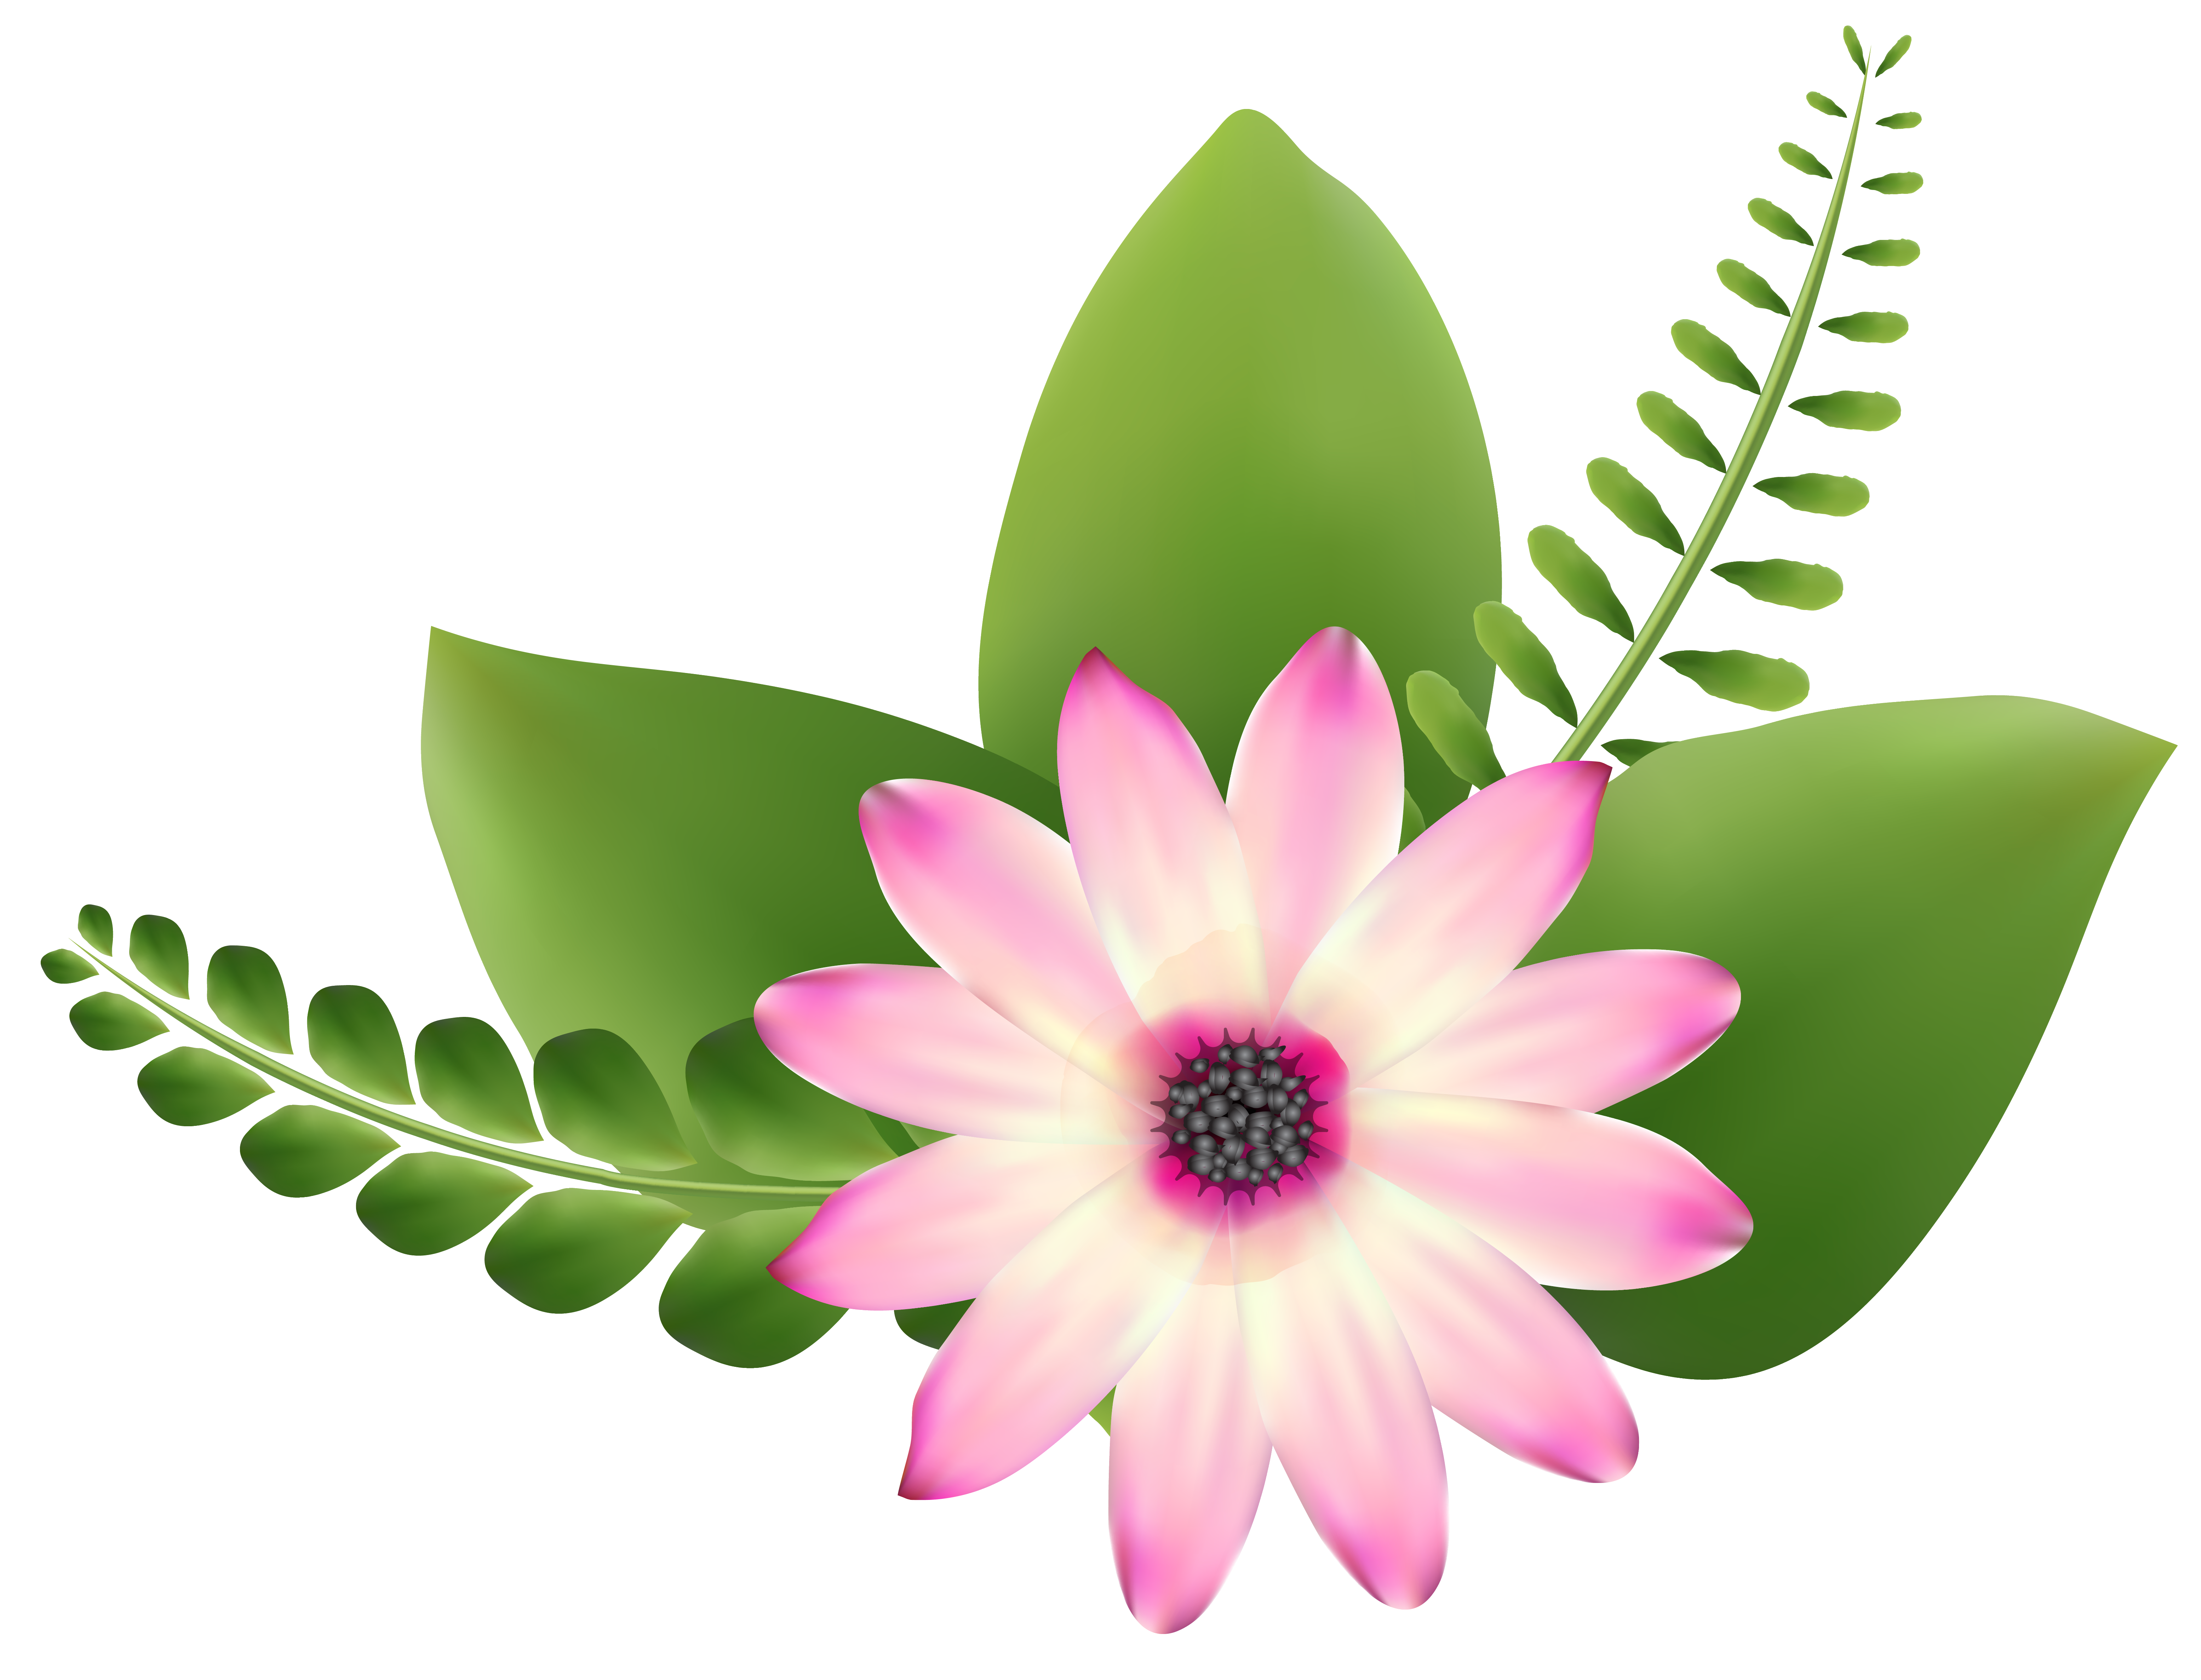 Free flower artwork jpg transparent Pink Flower Clip-Art PNG Image | Gallery Yopriceville - High ... jpg transparent